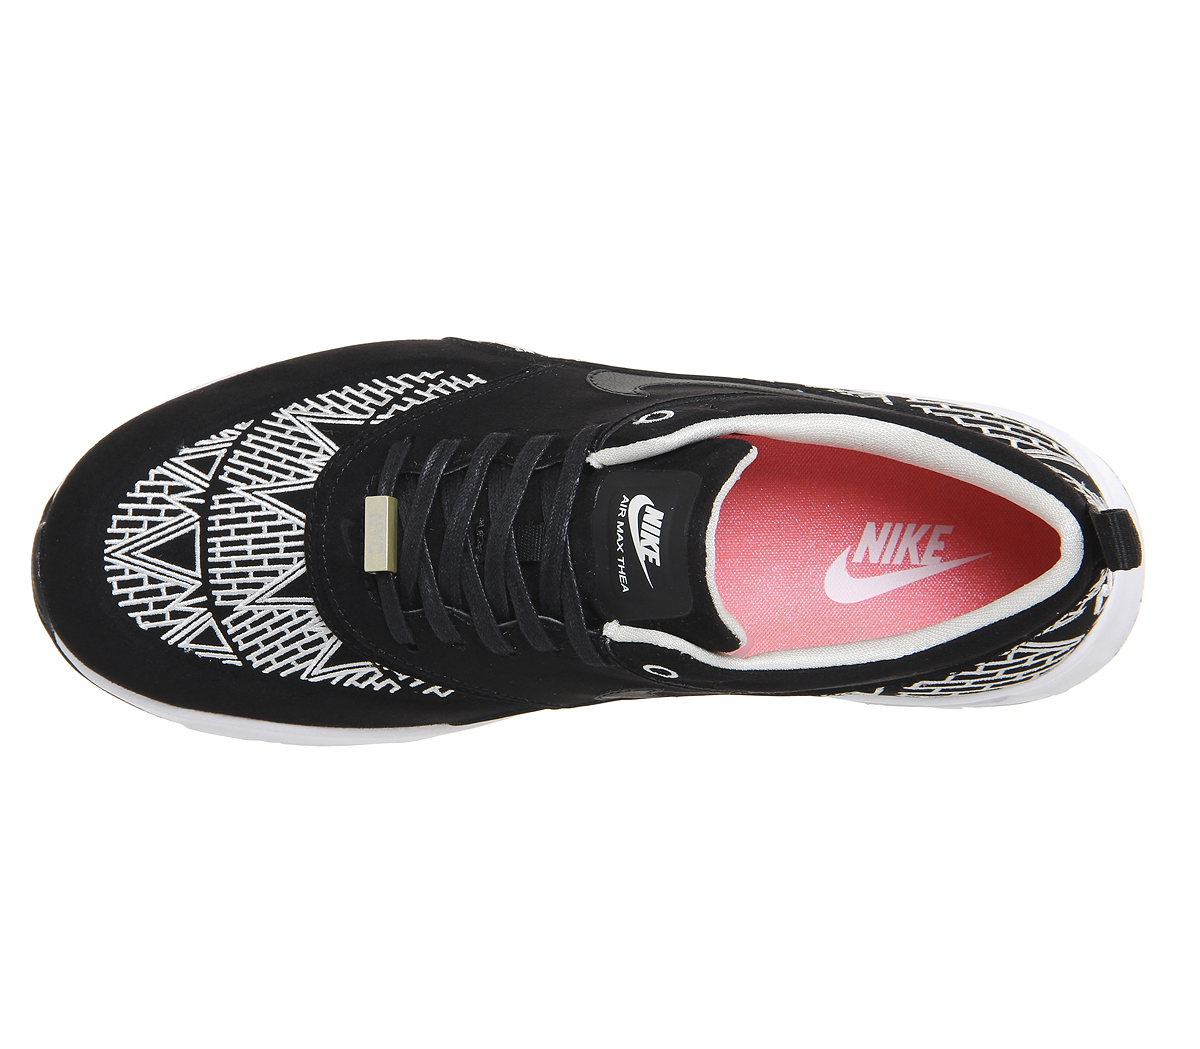 6de0c74a0b Nike Air Max Thea New York Black Lotc Qs - Hers trainers